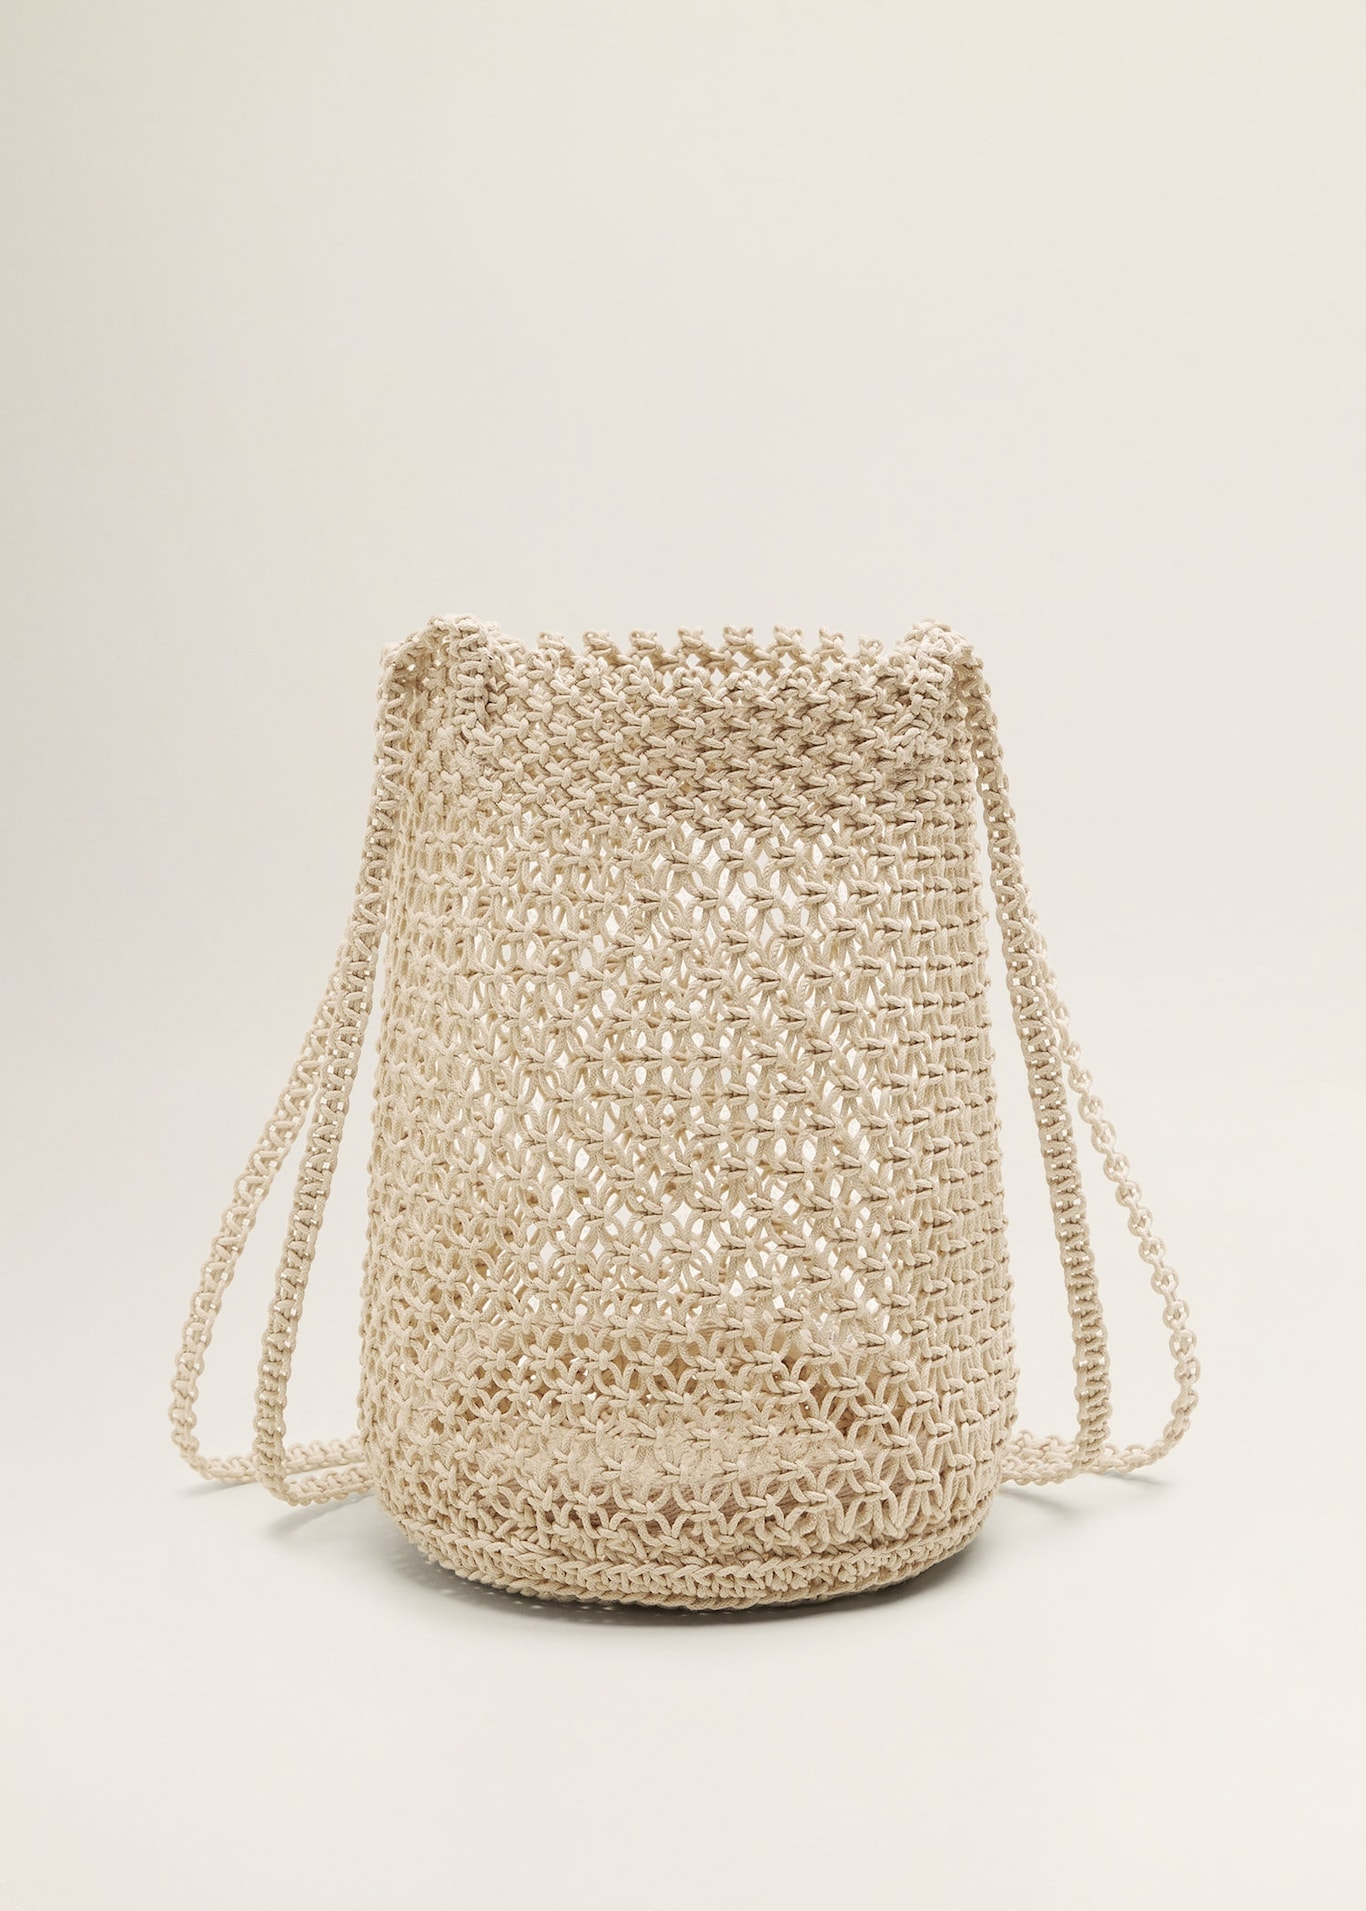 Cream Net Rope Basket Woven Bucket Purse